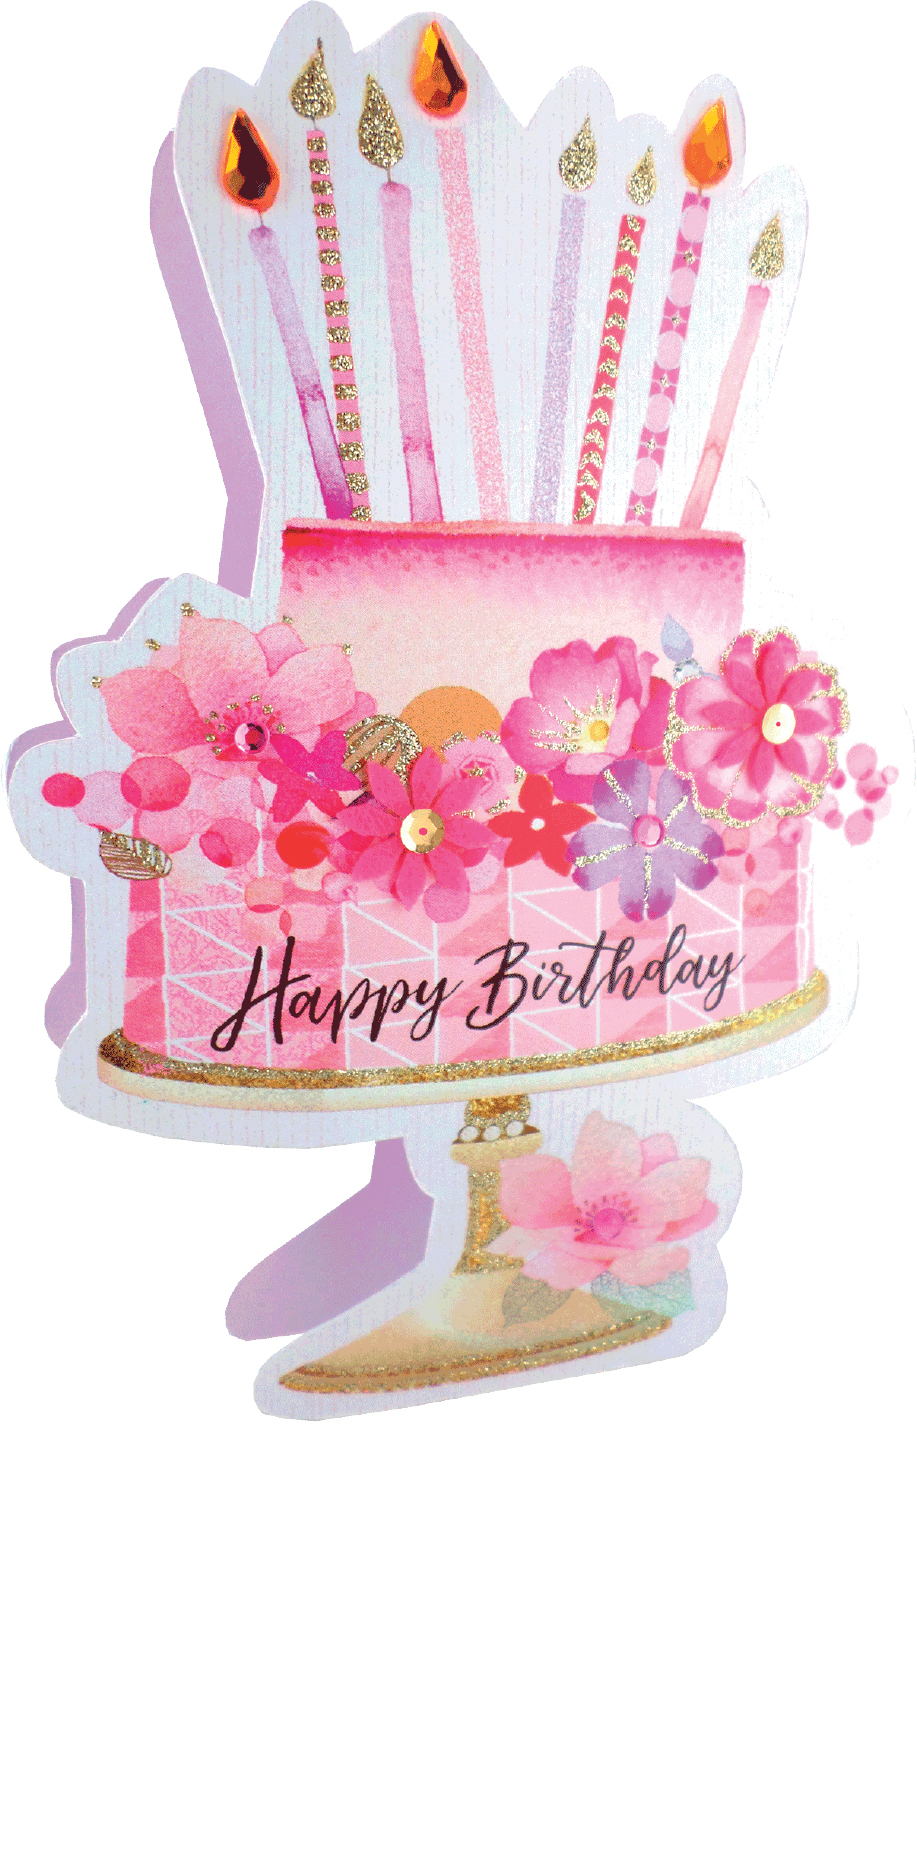 Strange Pink Cake Happy Birthday 3D Paper Dazzle Birthday Greeting Card Funny Birthday Cards Online Inifofree Goldxyz